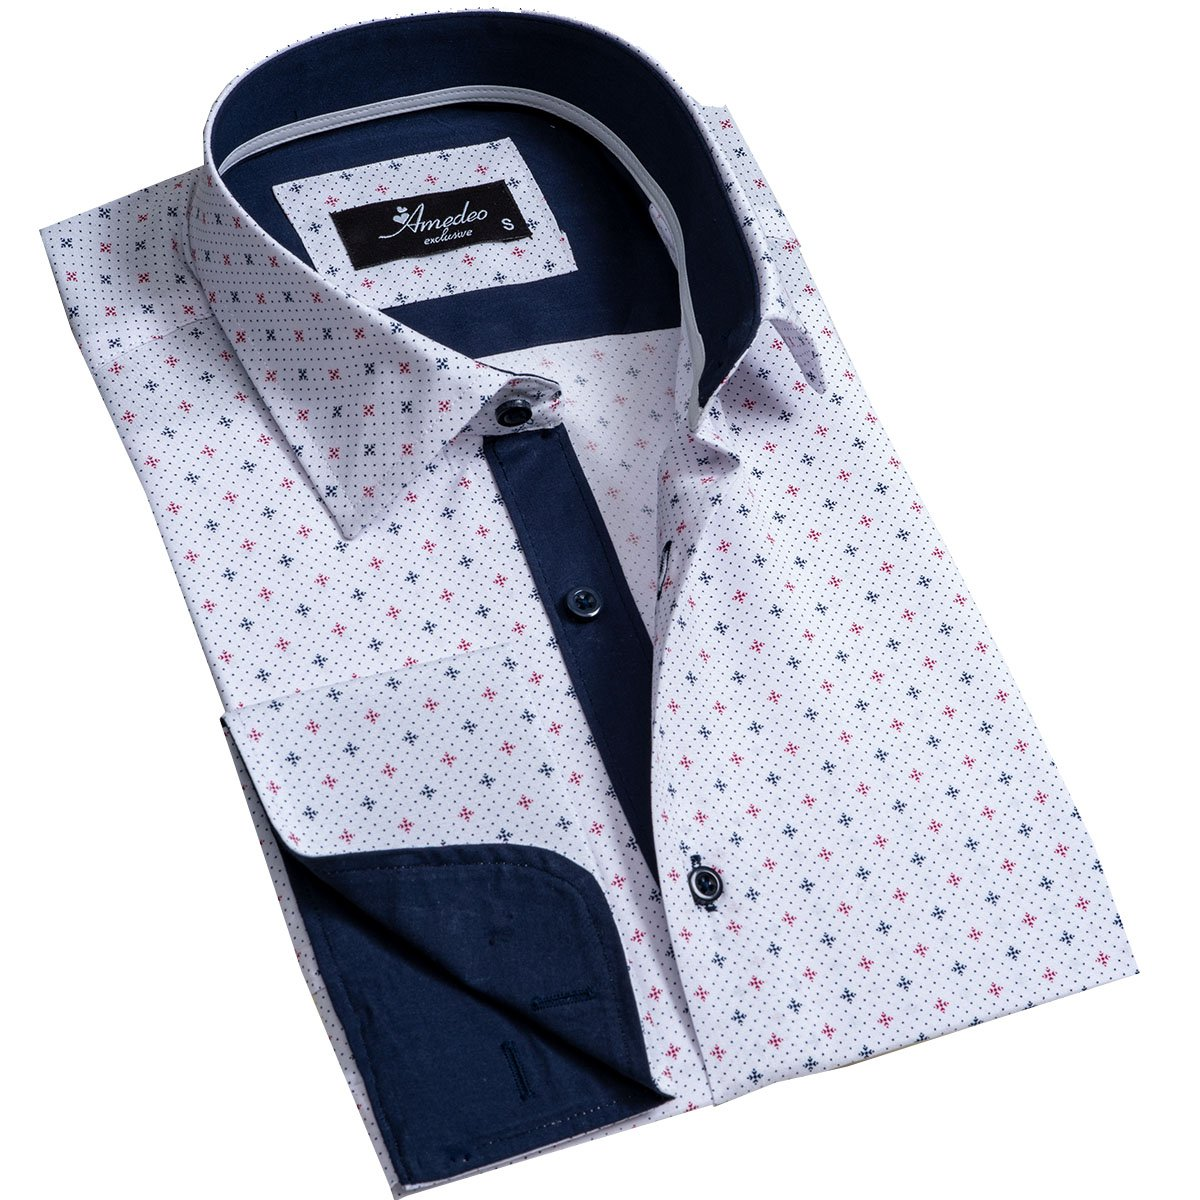 Off White Mens Slim Fit French Cuff Dress Shirts with Cufflink Holes - Casual and Formal - Amedeo Exclusive